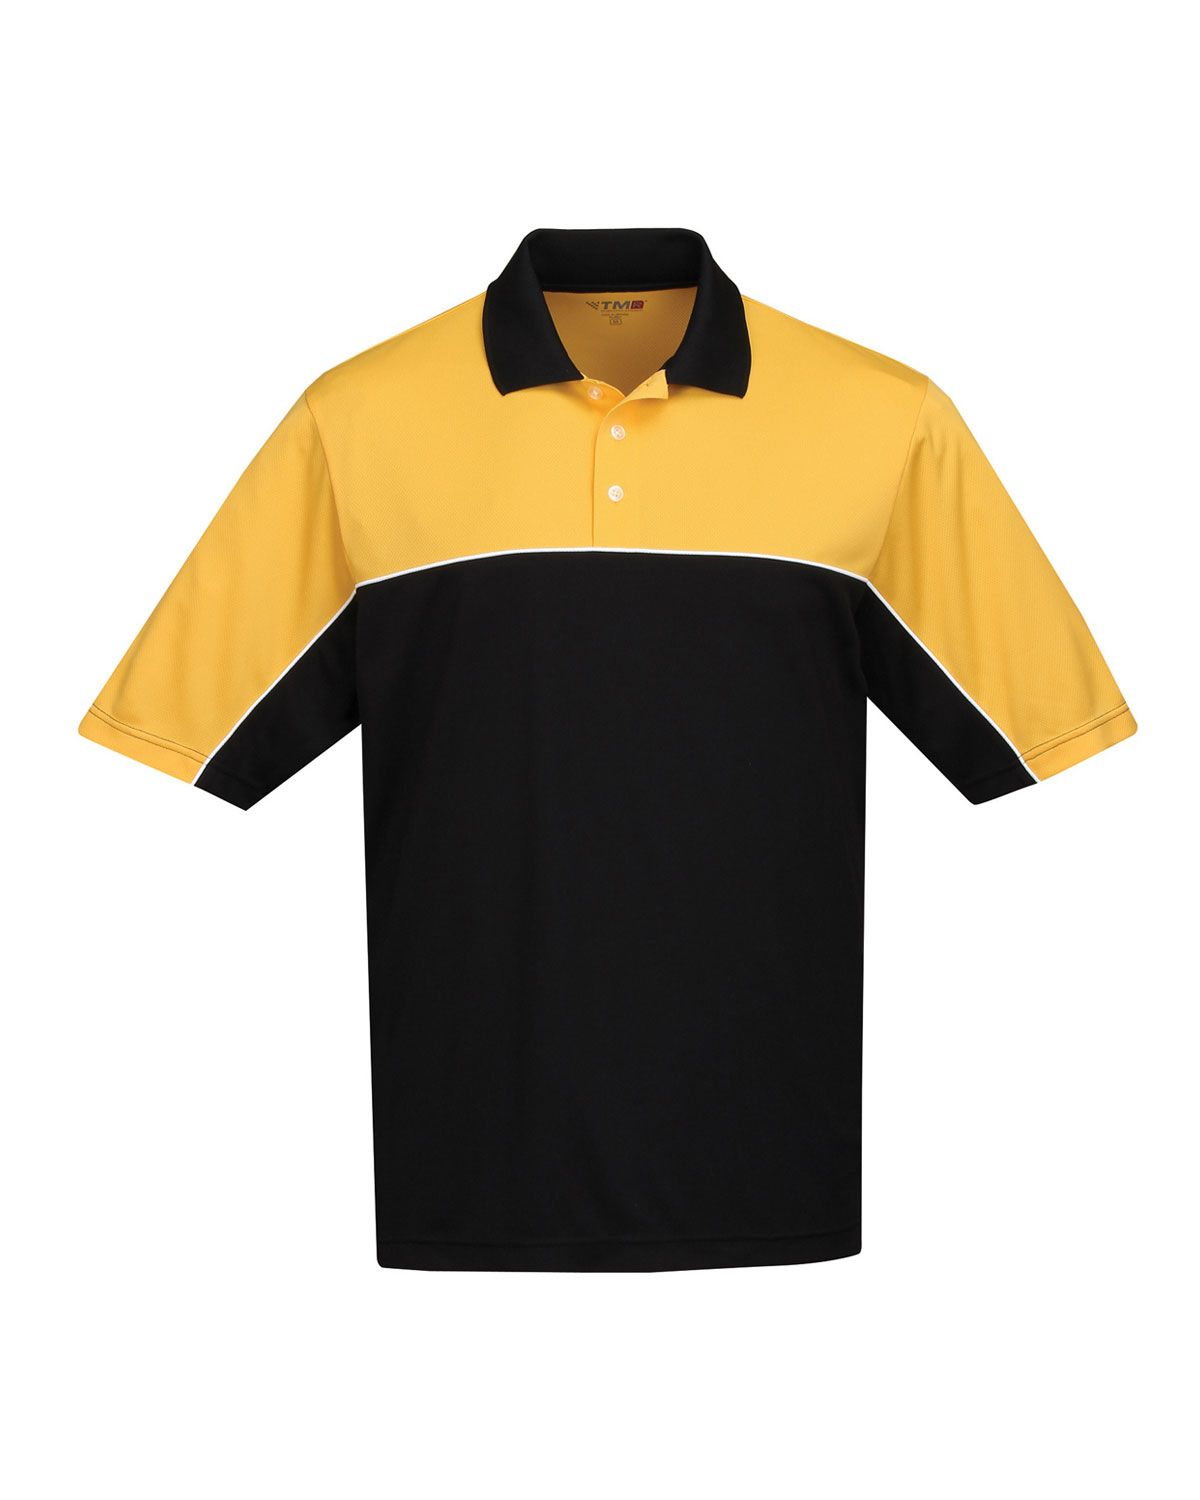 Mens polyester Color blocking polo shirt. Tri mountain K908 #colorblock #tshirt